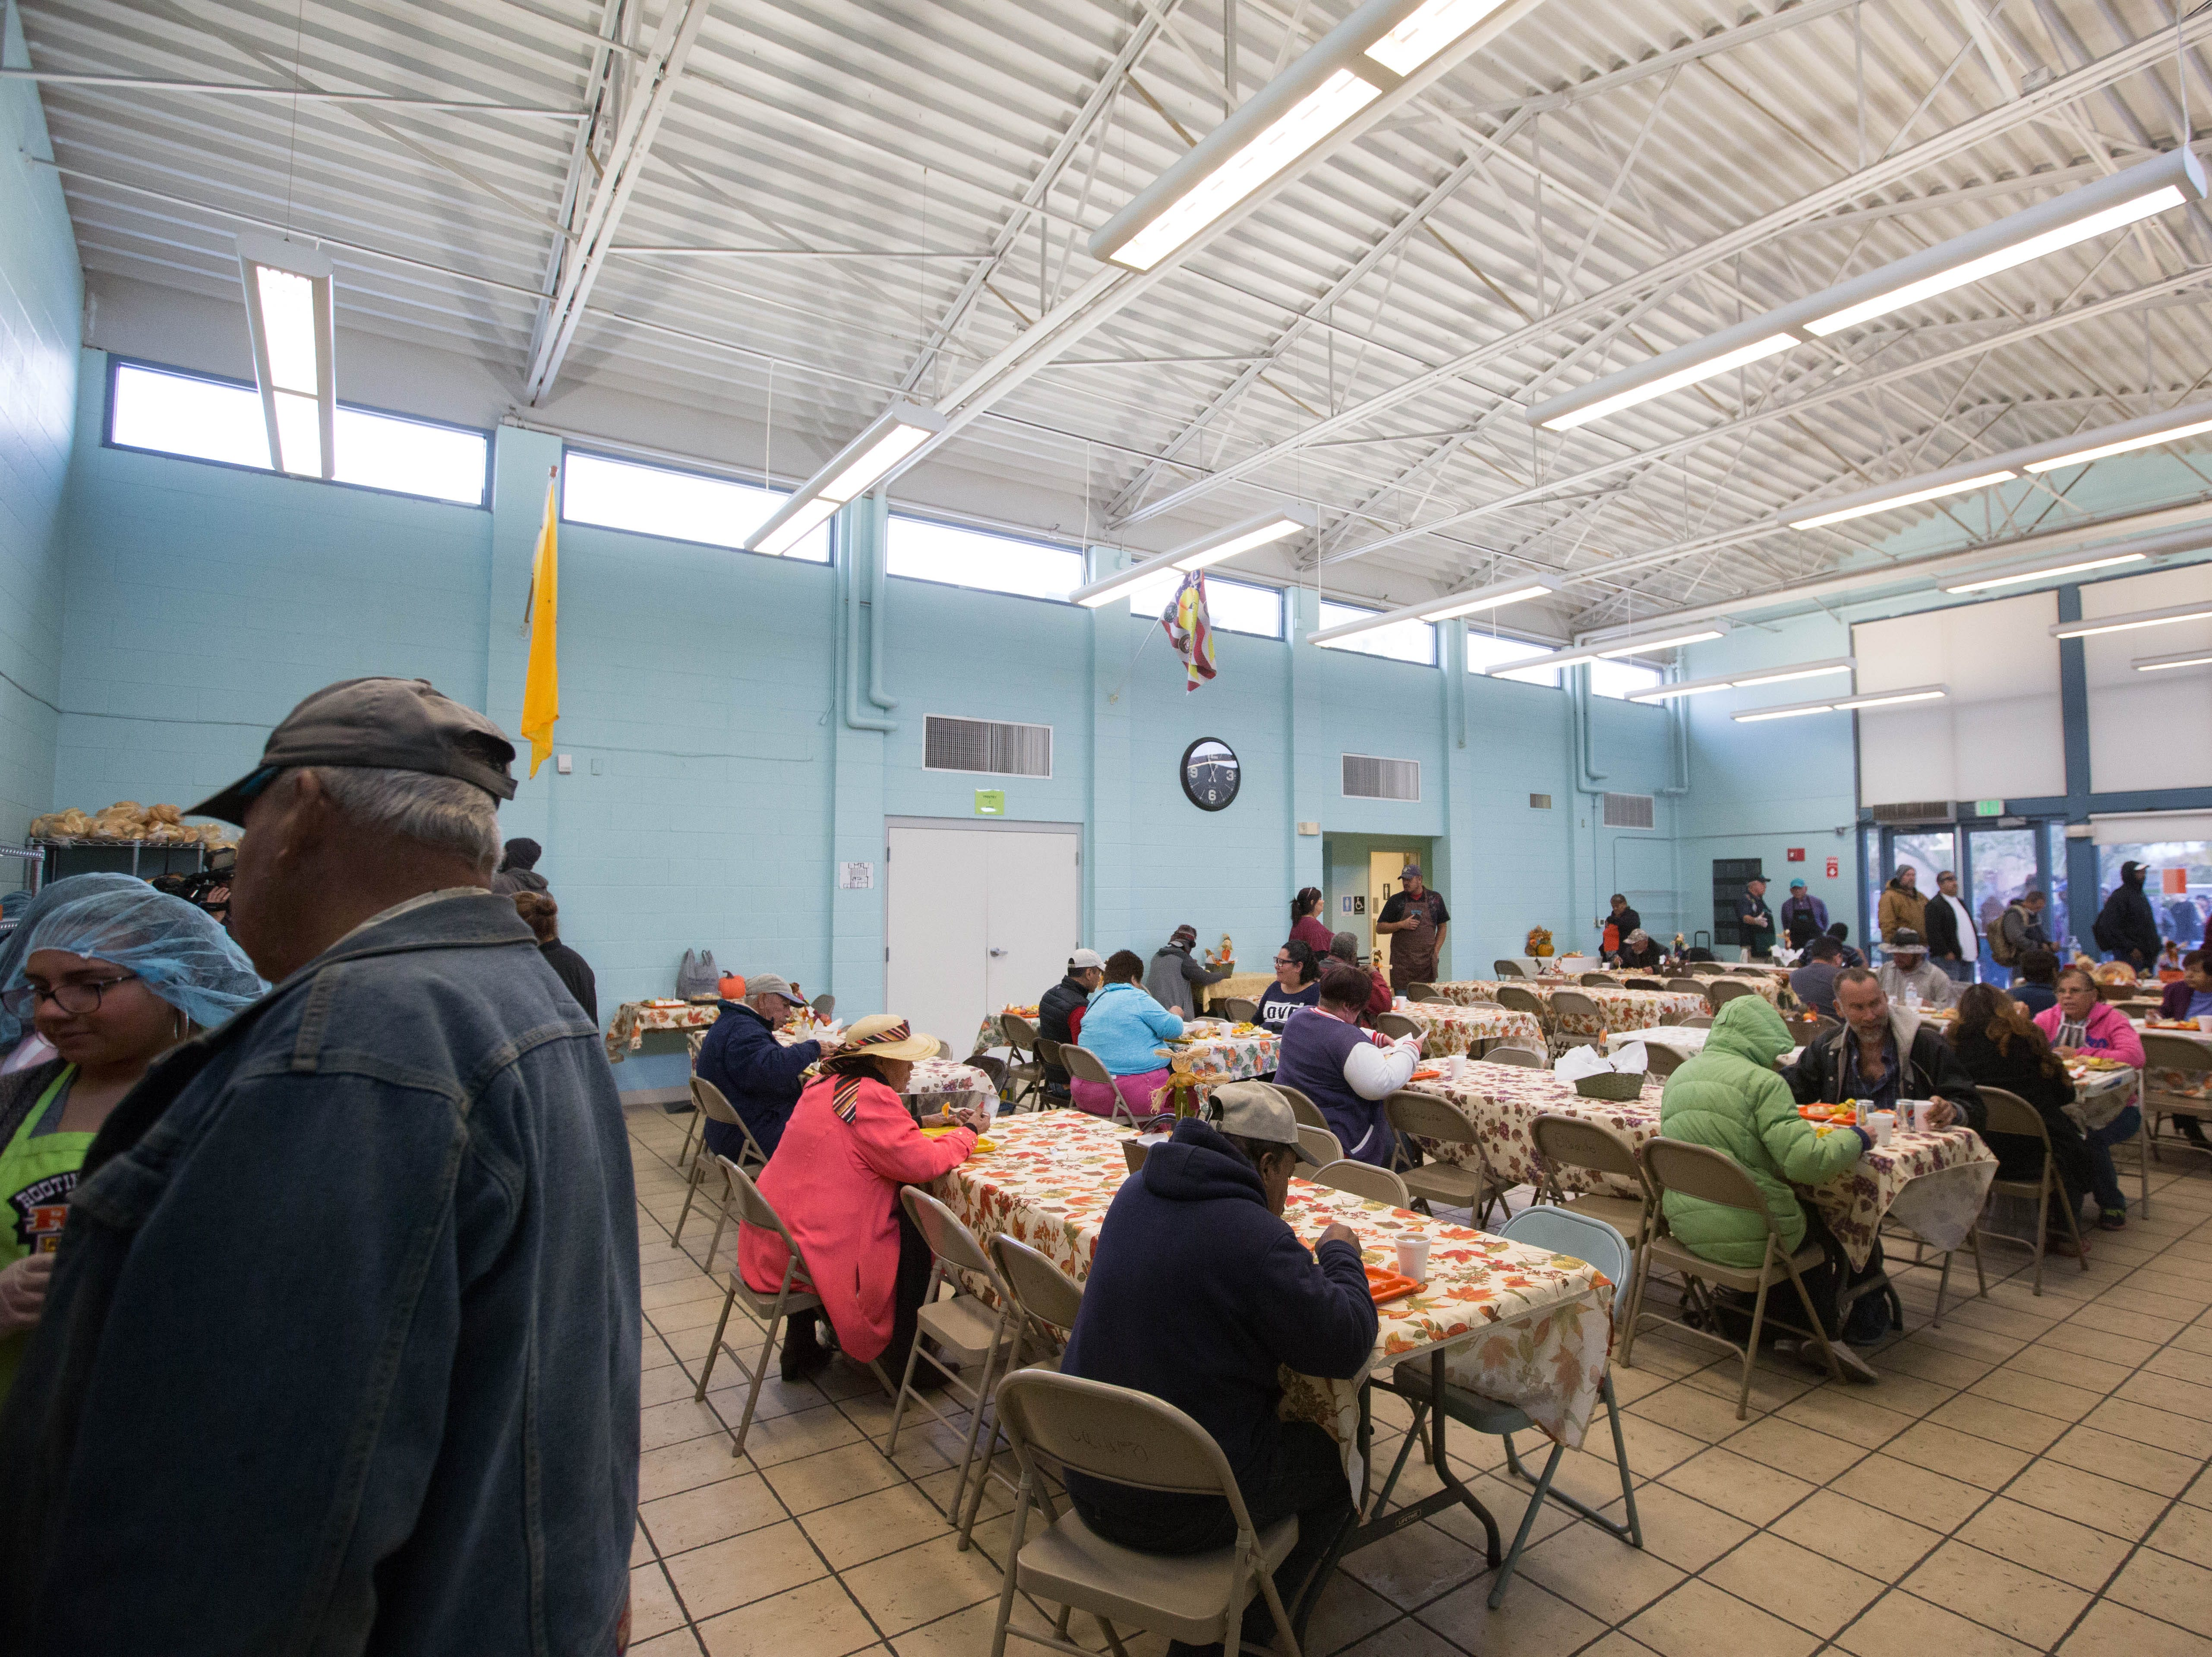 El Caldito Soup Kitchen, held its annual Thanksgiving day dinner, Thursday November 22, 2018. Organizers expected to serve around 400 people.